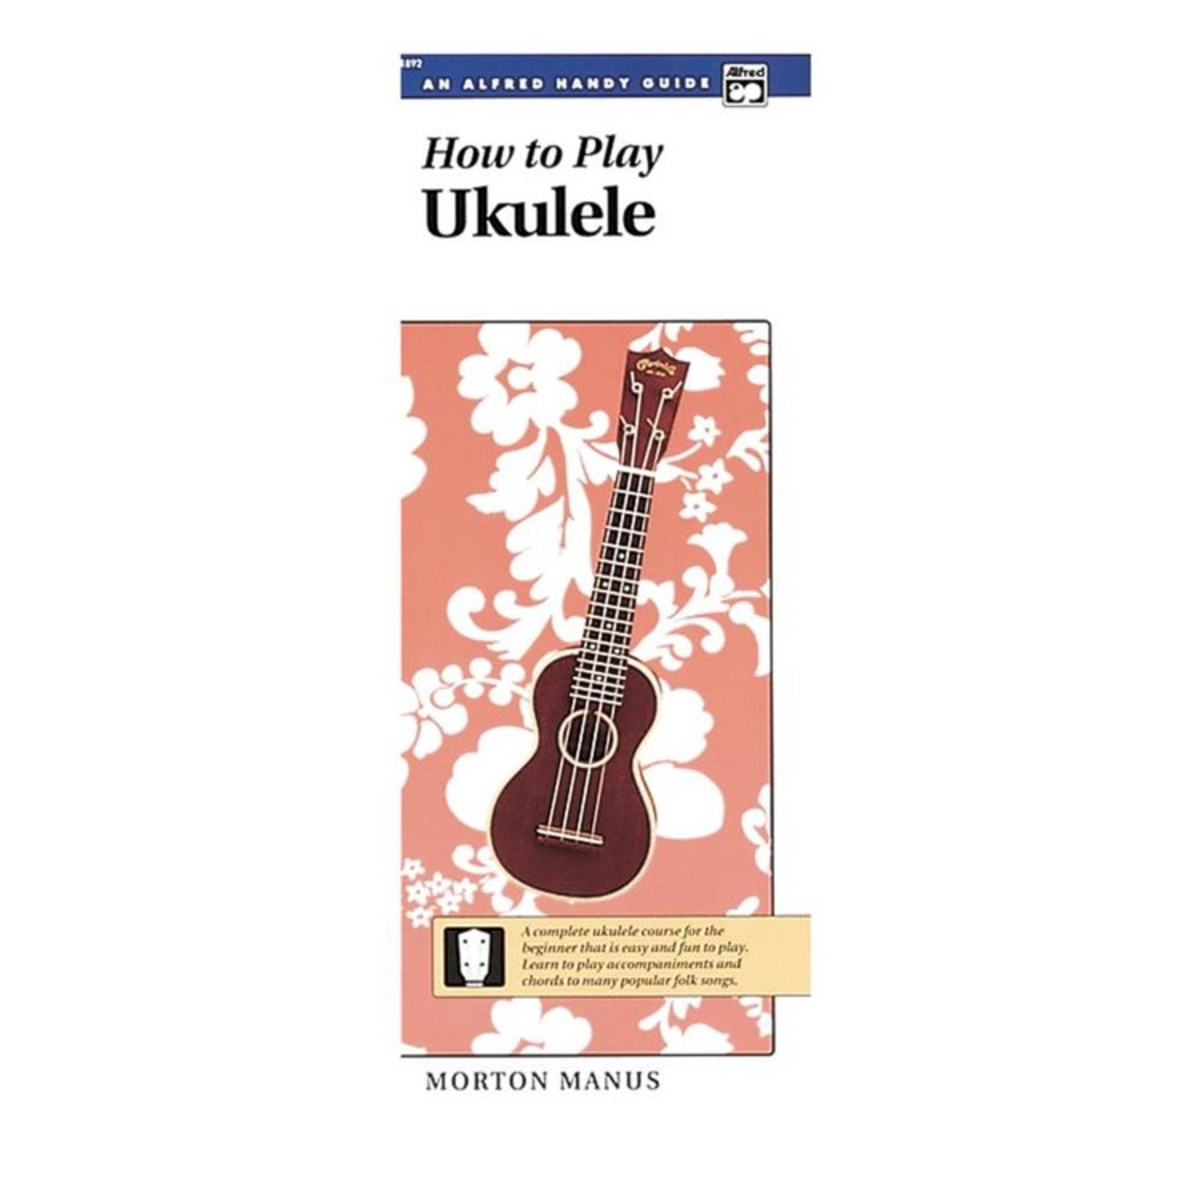 Image of How to Play Ukulele Handy Guide